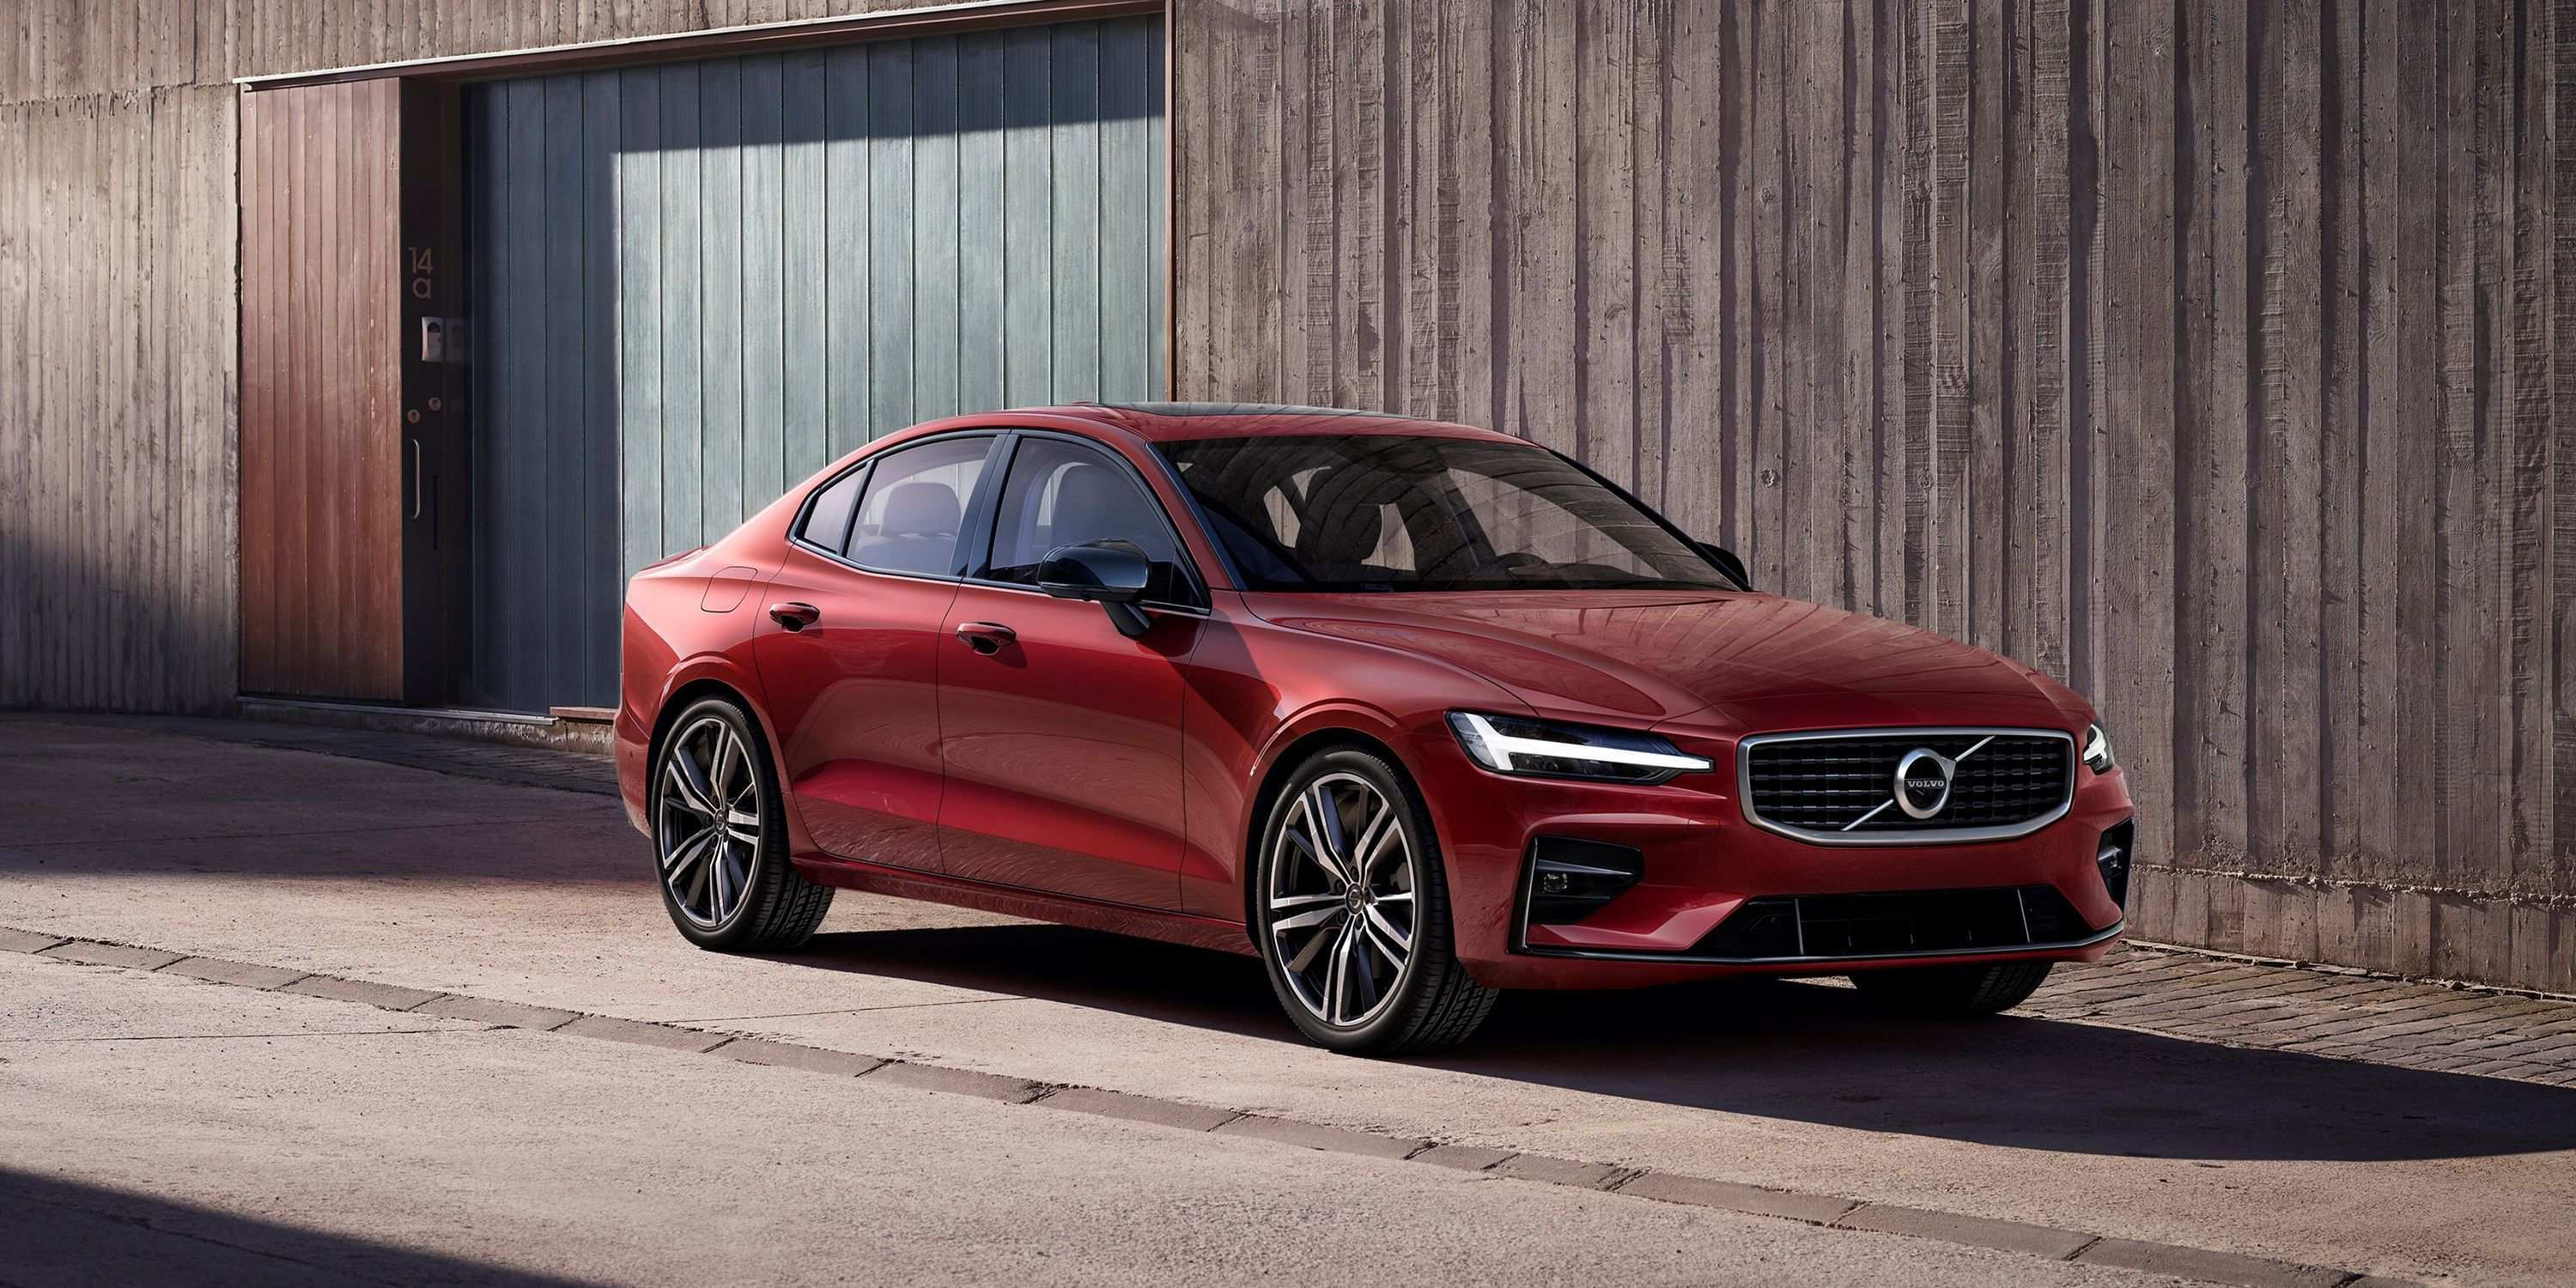 59 New Volvo Hybrid 2019 Price New Engine Spesification by Volvo Hybrid 2019 Price New Engine